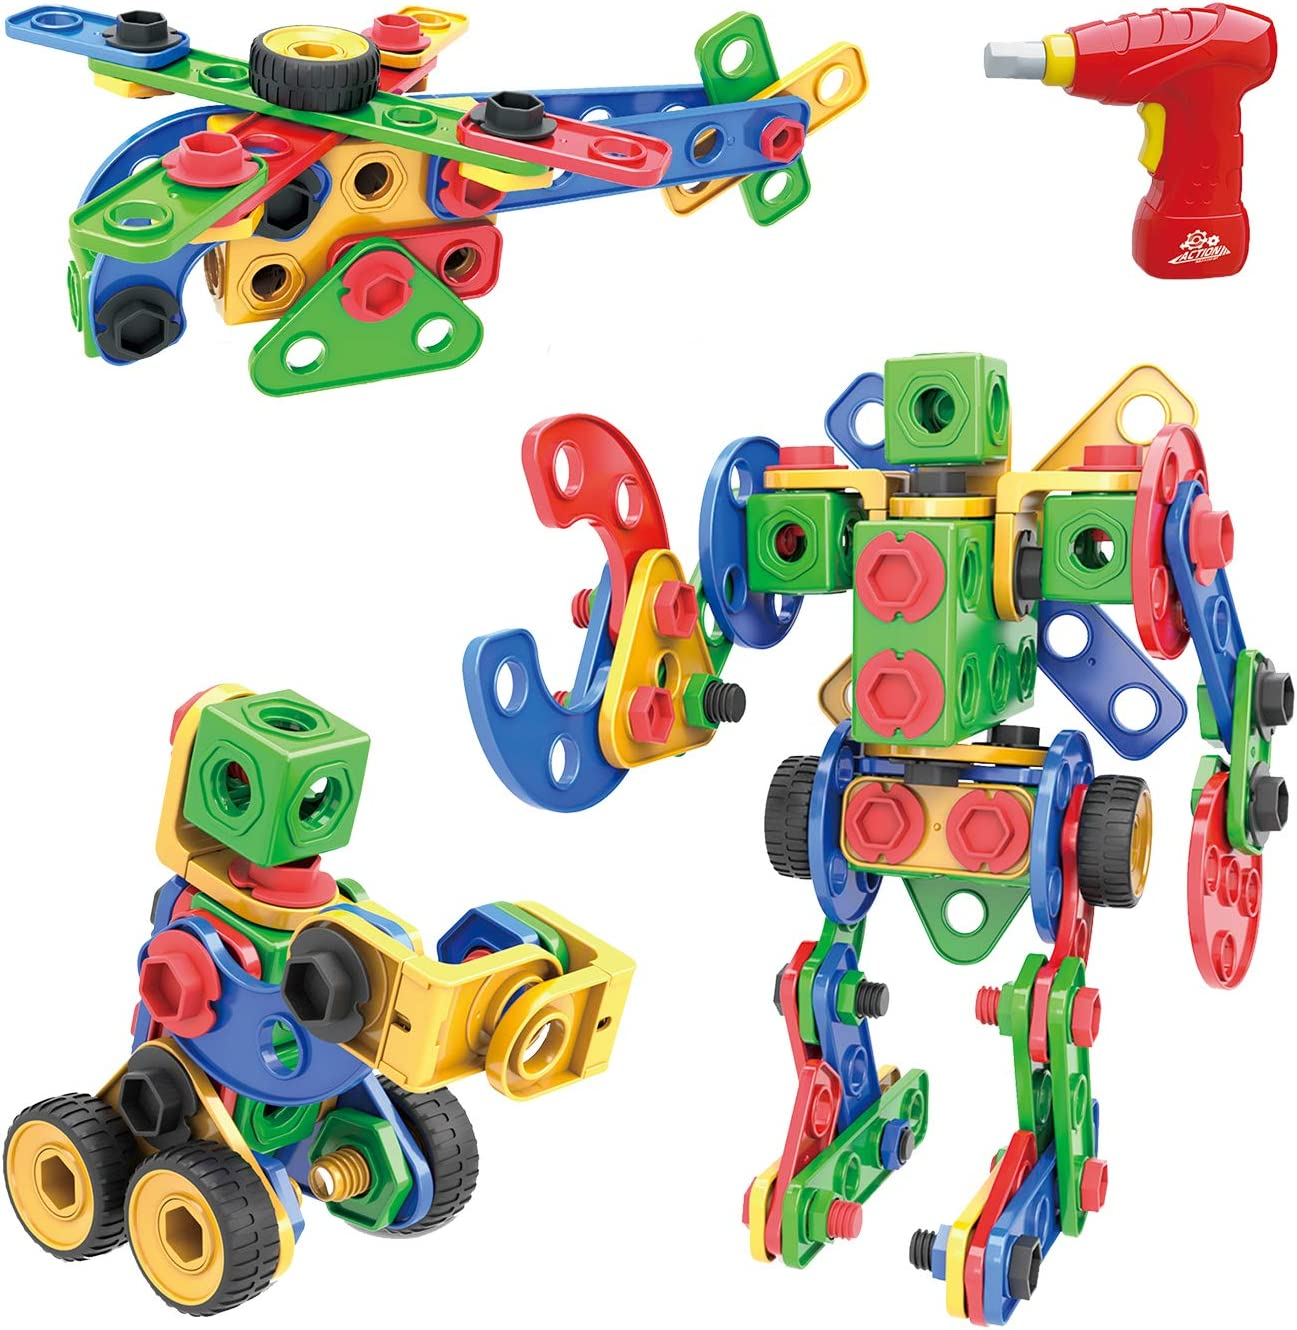 Amazon coupon code for STEM Learning Toys Toddlers Educational